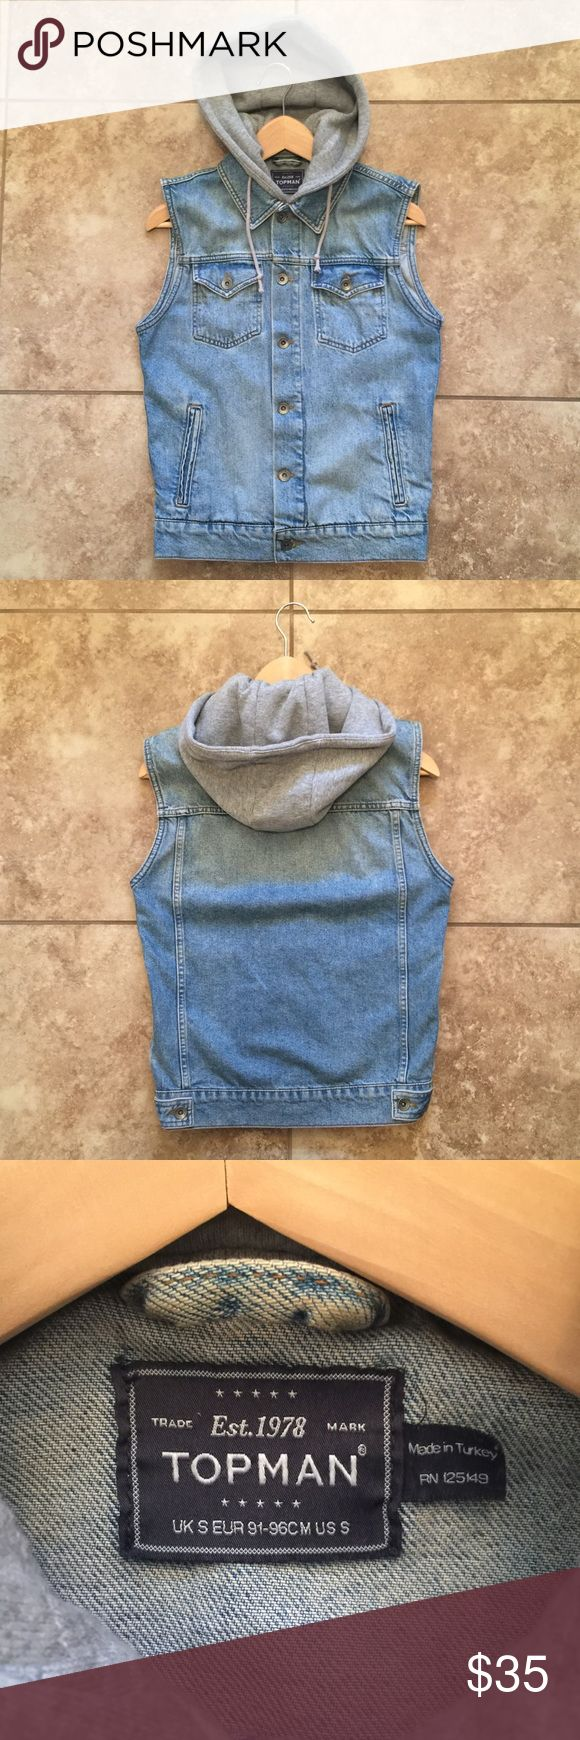 Mens Topman denim vest Mens Topman brand light wash denim vest with attached grey jersey hoodie. Vest is not lined. Size S and could fit XS Topman Jackets & Coats